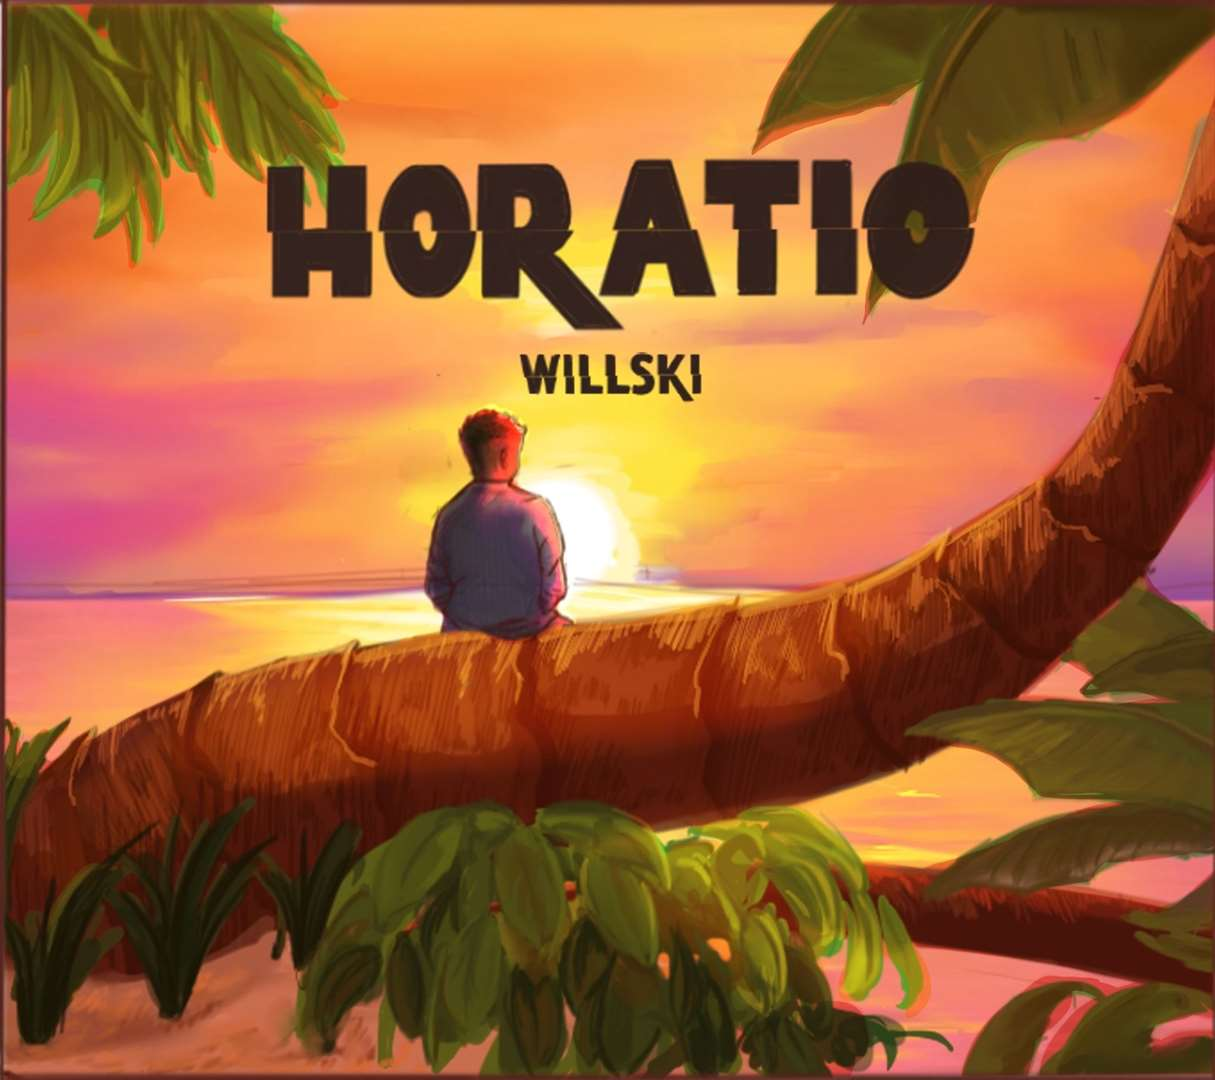 The back cover of Will Perry's first album 'Horatio', which will be released on his 21st birthday on Friday, July 3. Picture: SUBMITTED